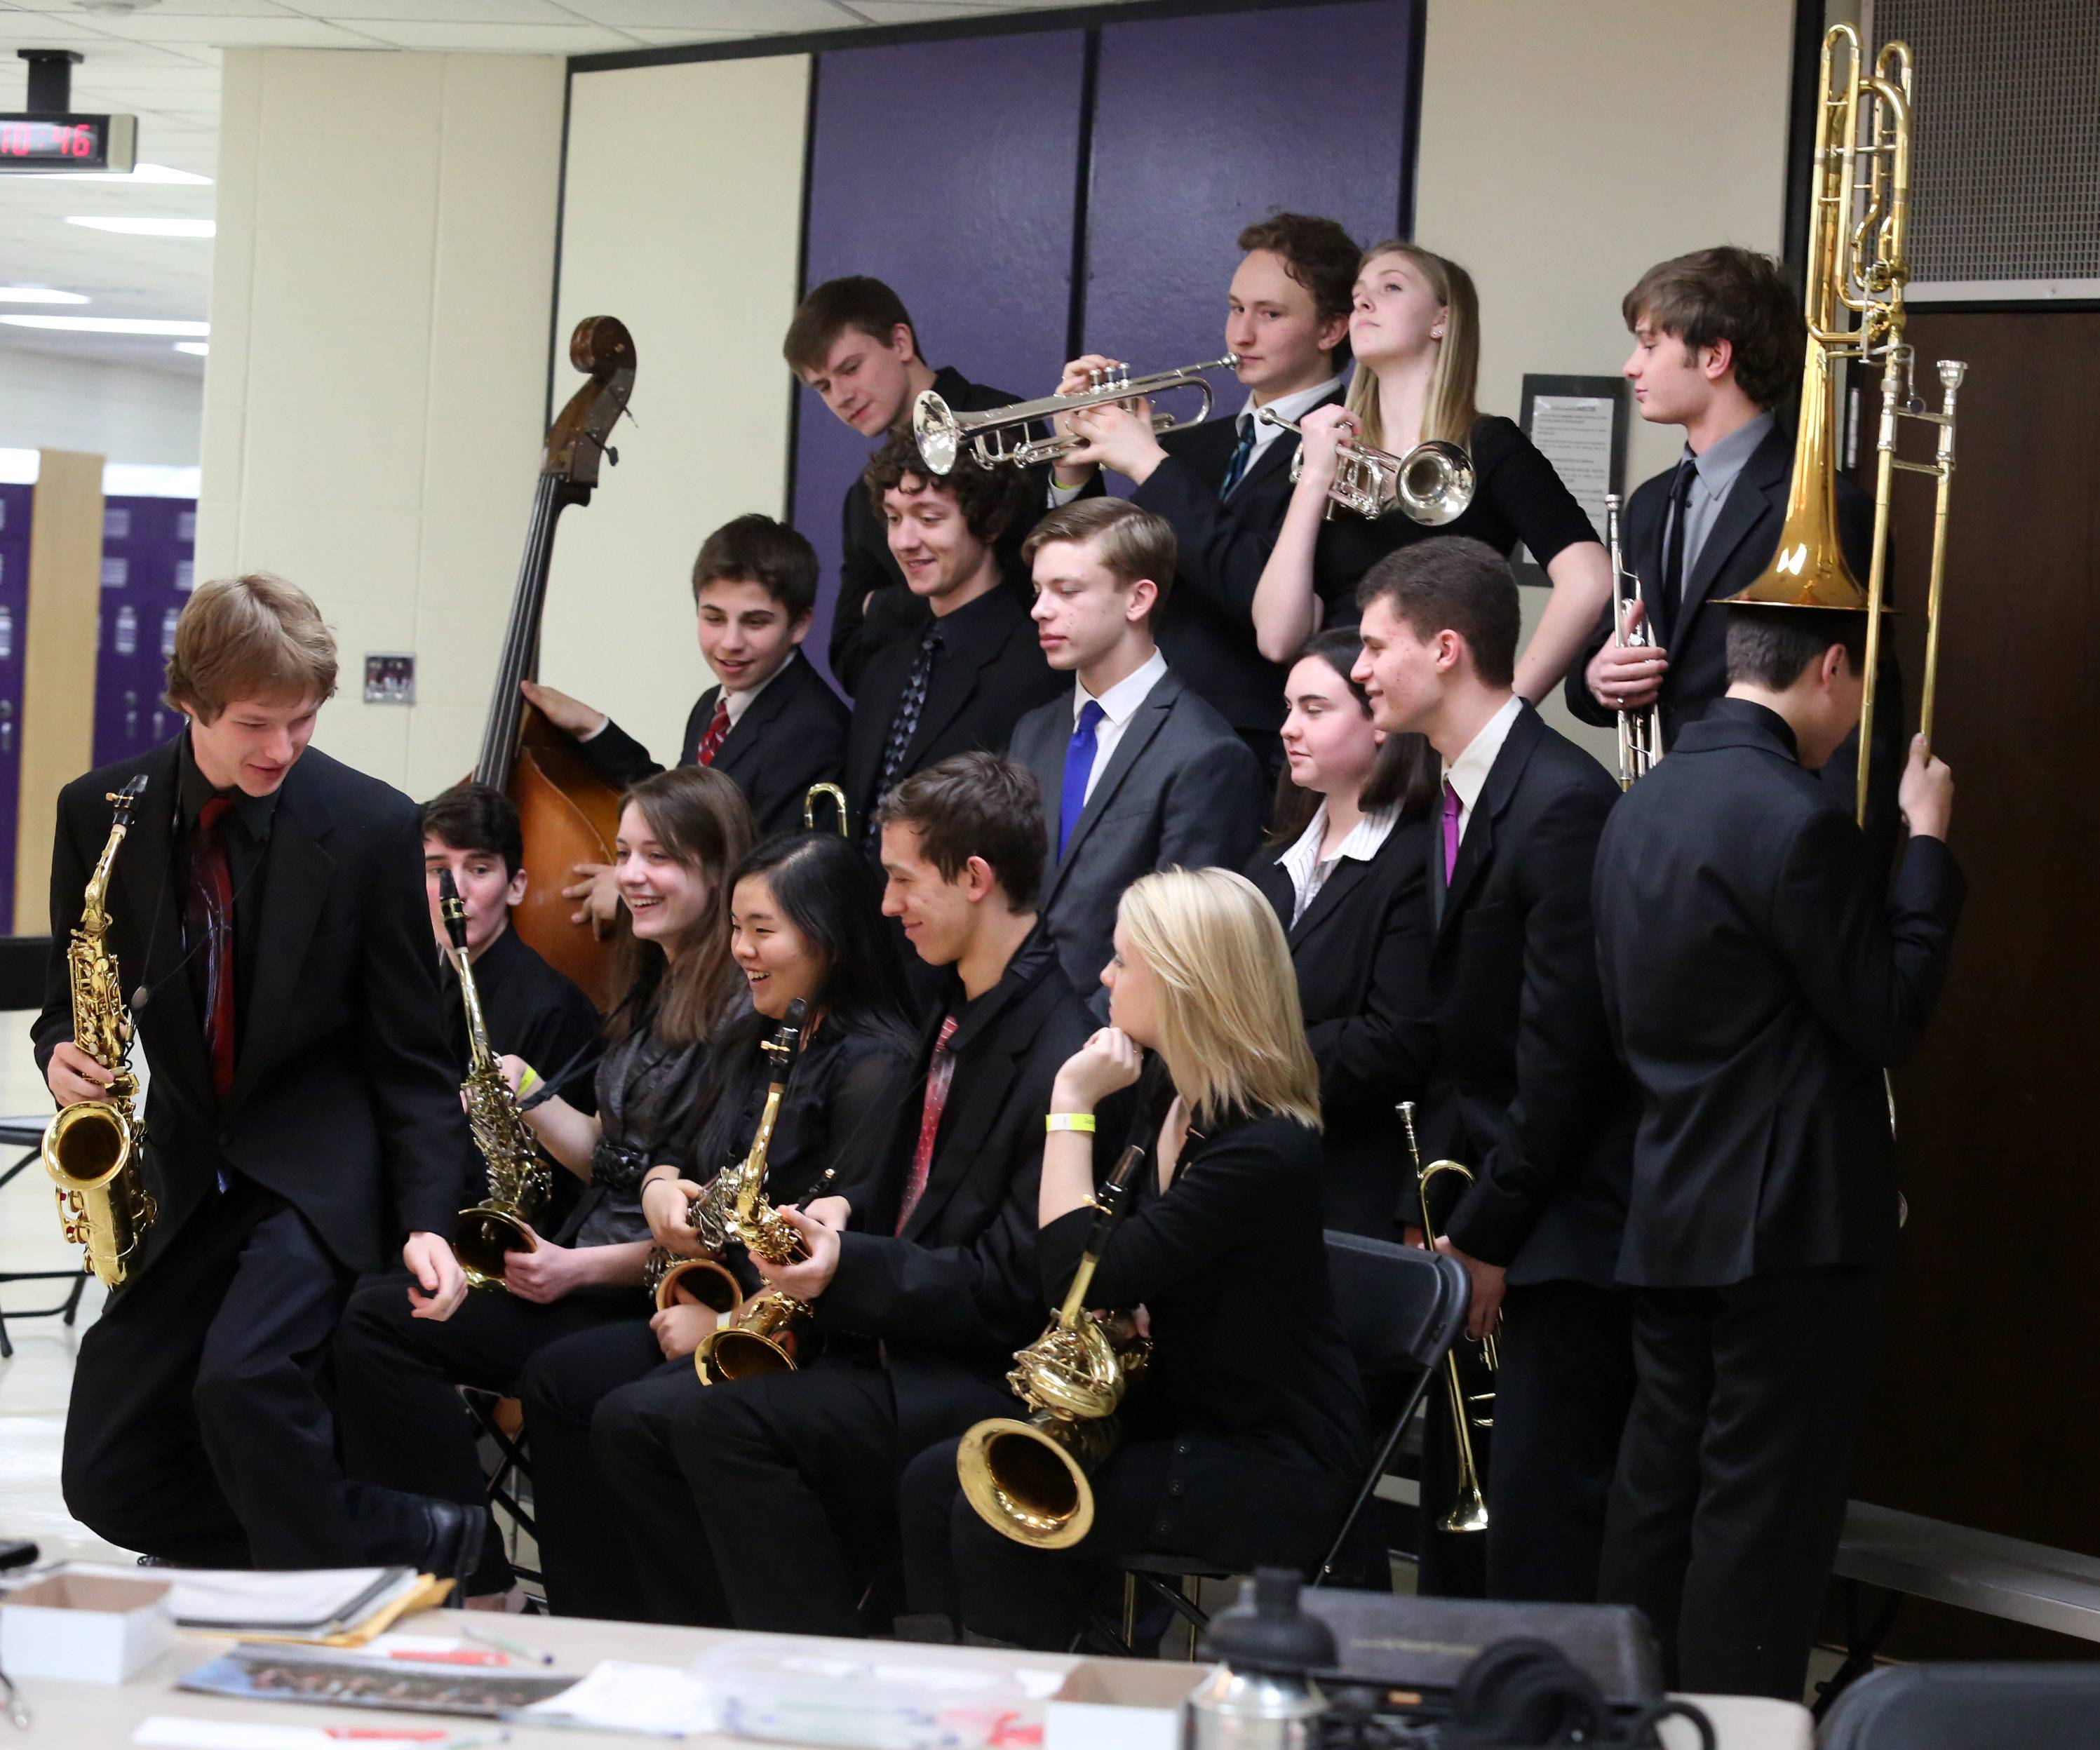 Schaumburg High School's jazz ensemble one makes a funny pose while a photographer takes their picture at the 29th annual Jazz in the Meadows program on Saturday in the theater at Rolling Meadows High School.